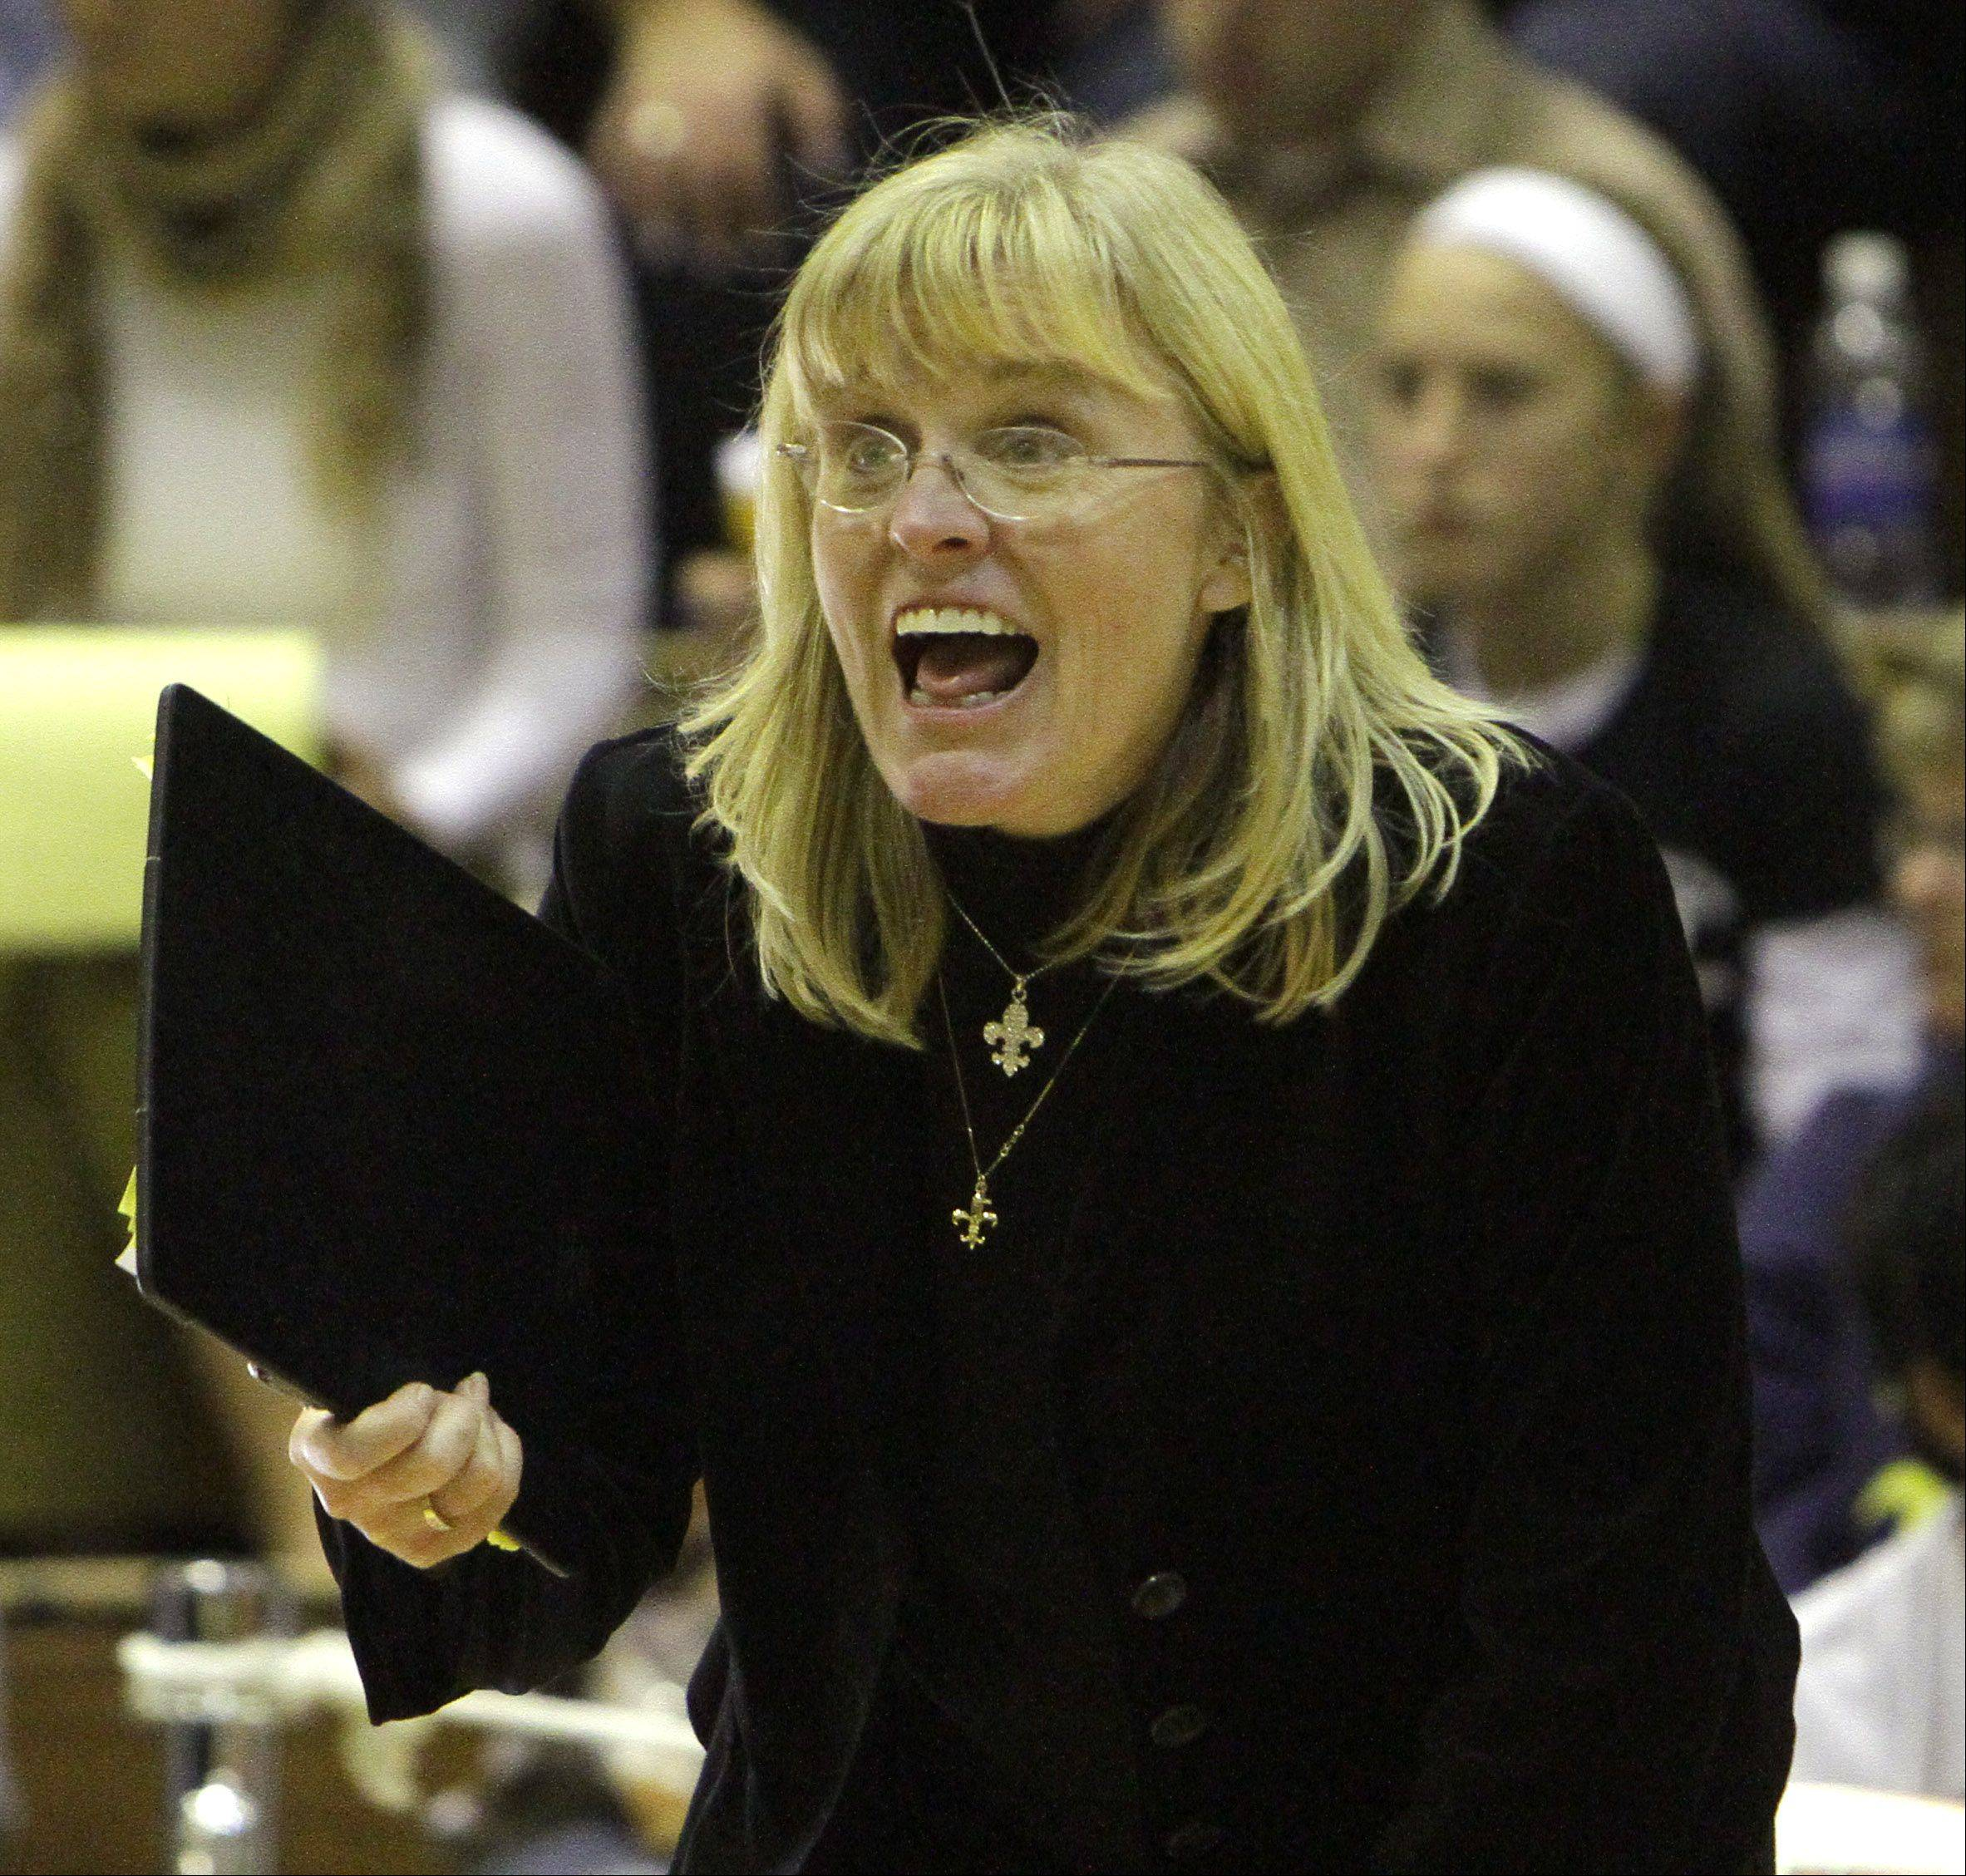 Kevin Sherman/ksherman@dailyherald.com ¬ St. Charles East girls volleyball head coach Jennie Kull shouts to her team during the final moments of their loss to Cary-Grove during their girls volleyball supersectional game in St. Charles on Saturday night.